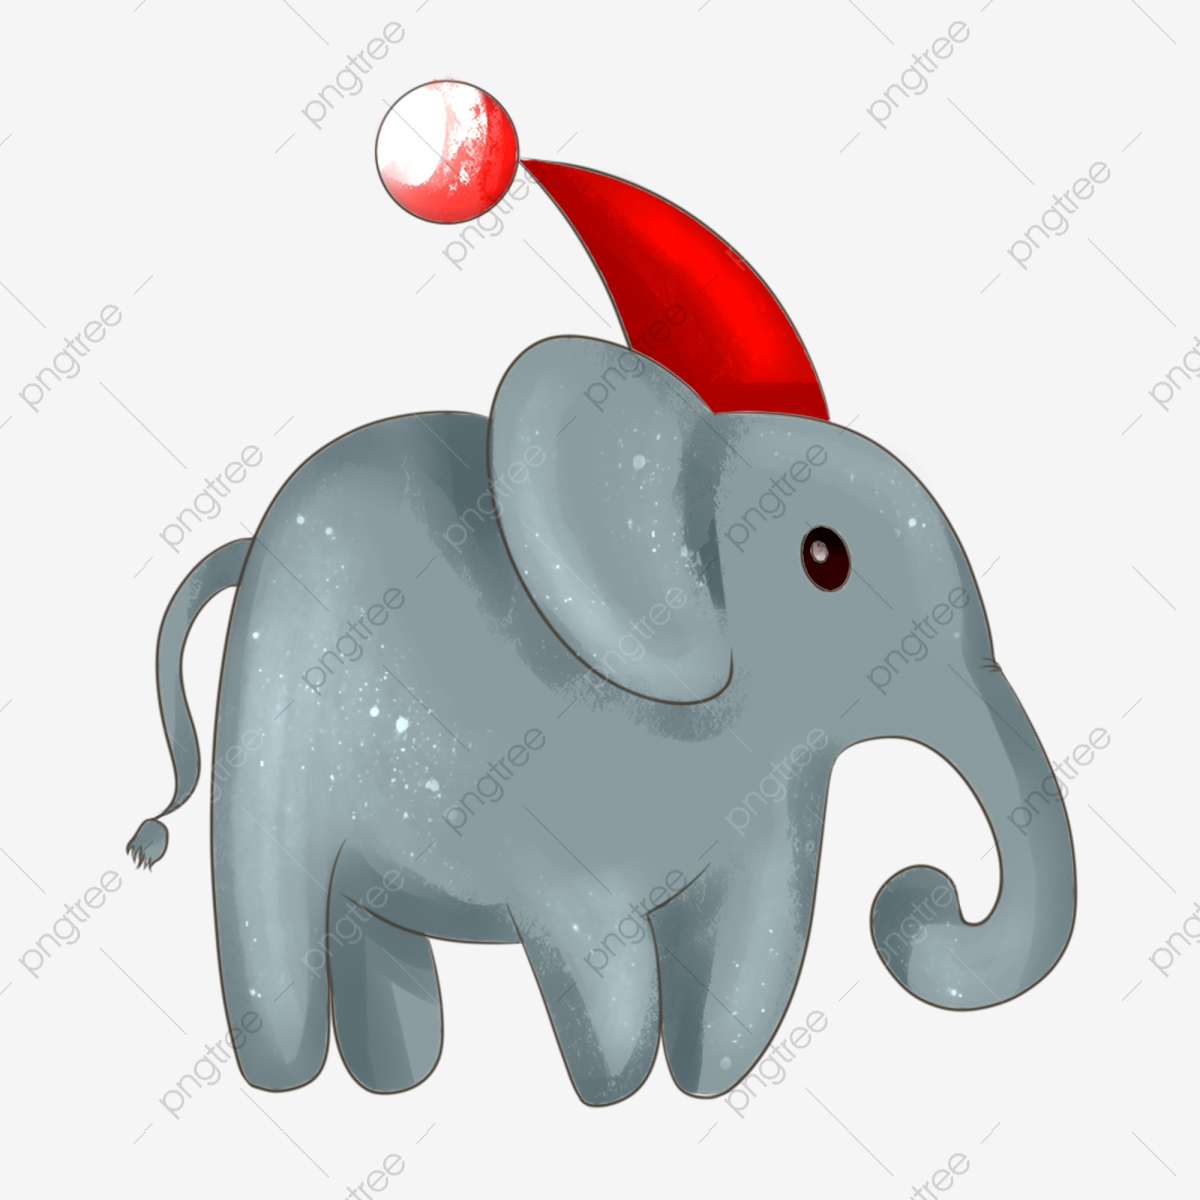 Elephant Cartoon Png Vector Psd And Clipart With Transparent Background For Free Download Pngtree African bush elephant asian elephant african forest elephant, elephants, mammal, image file formats, animals png. https pngtree com freepng hand drawn elephant cartoon elephant christmas elephant illustration grey elephant 3901398 html